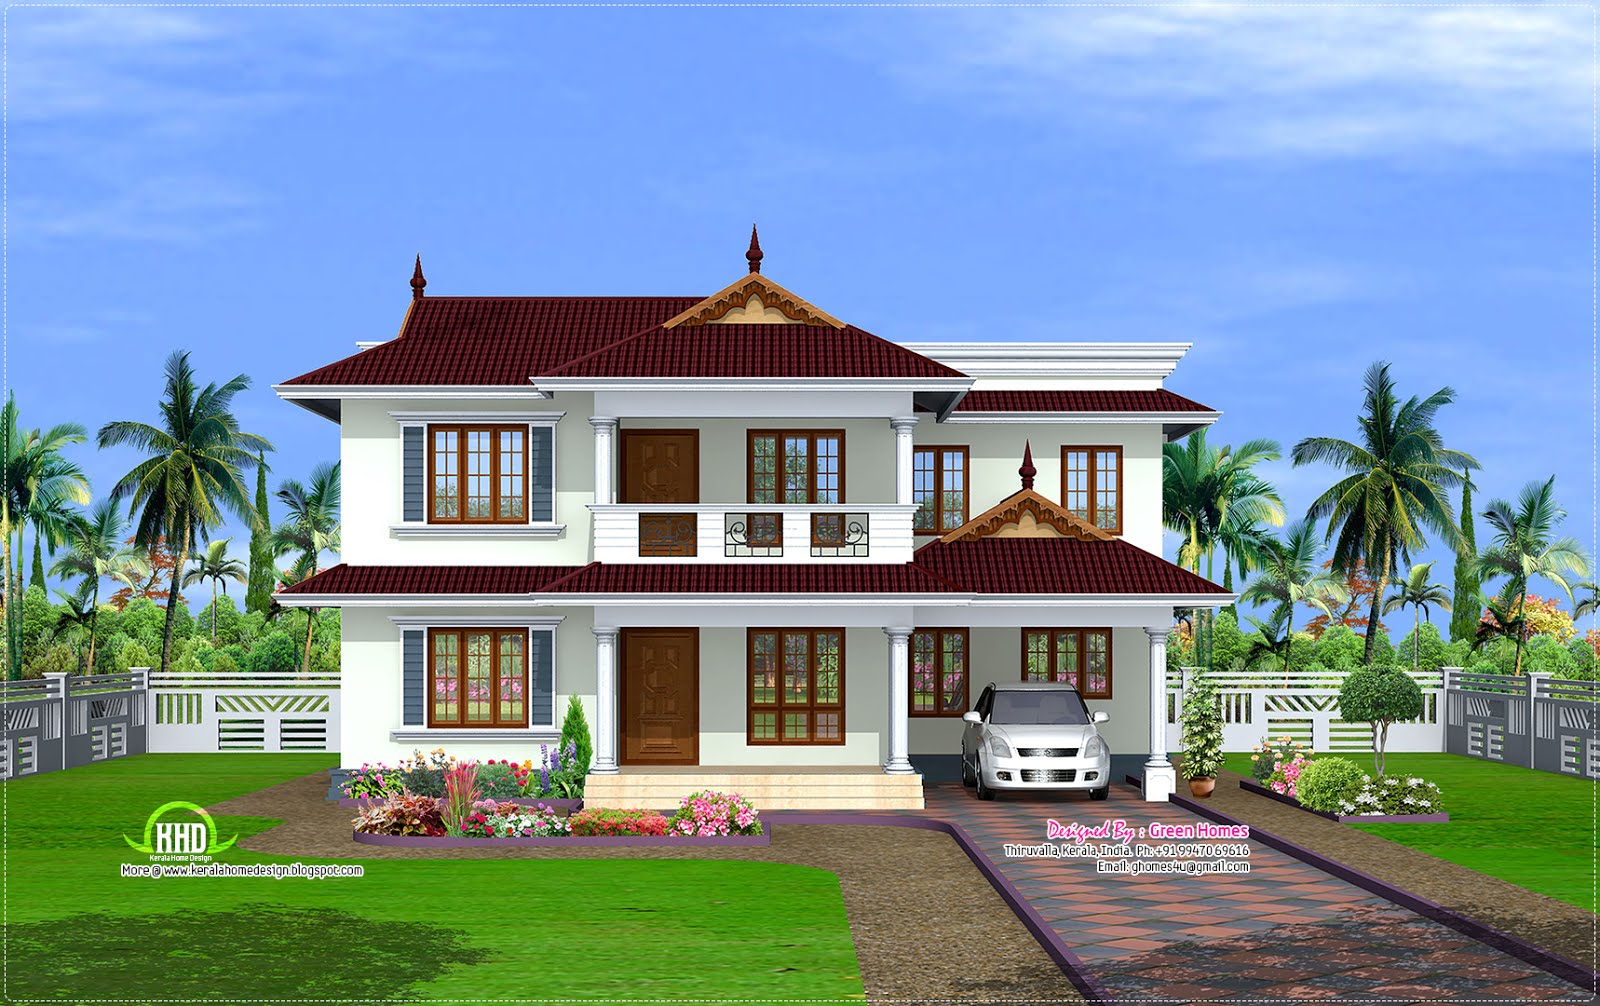 New model houses in kerala photos images for The model house